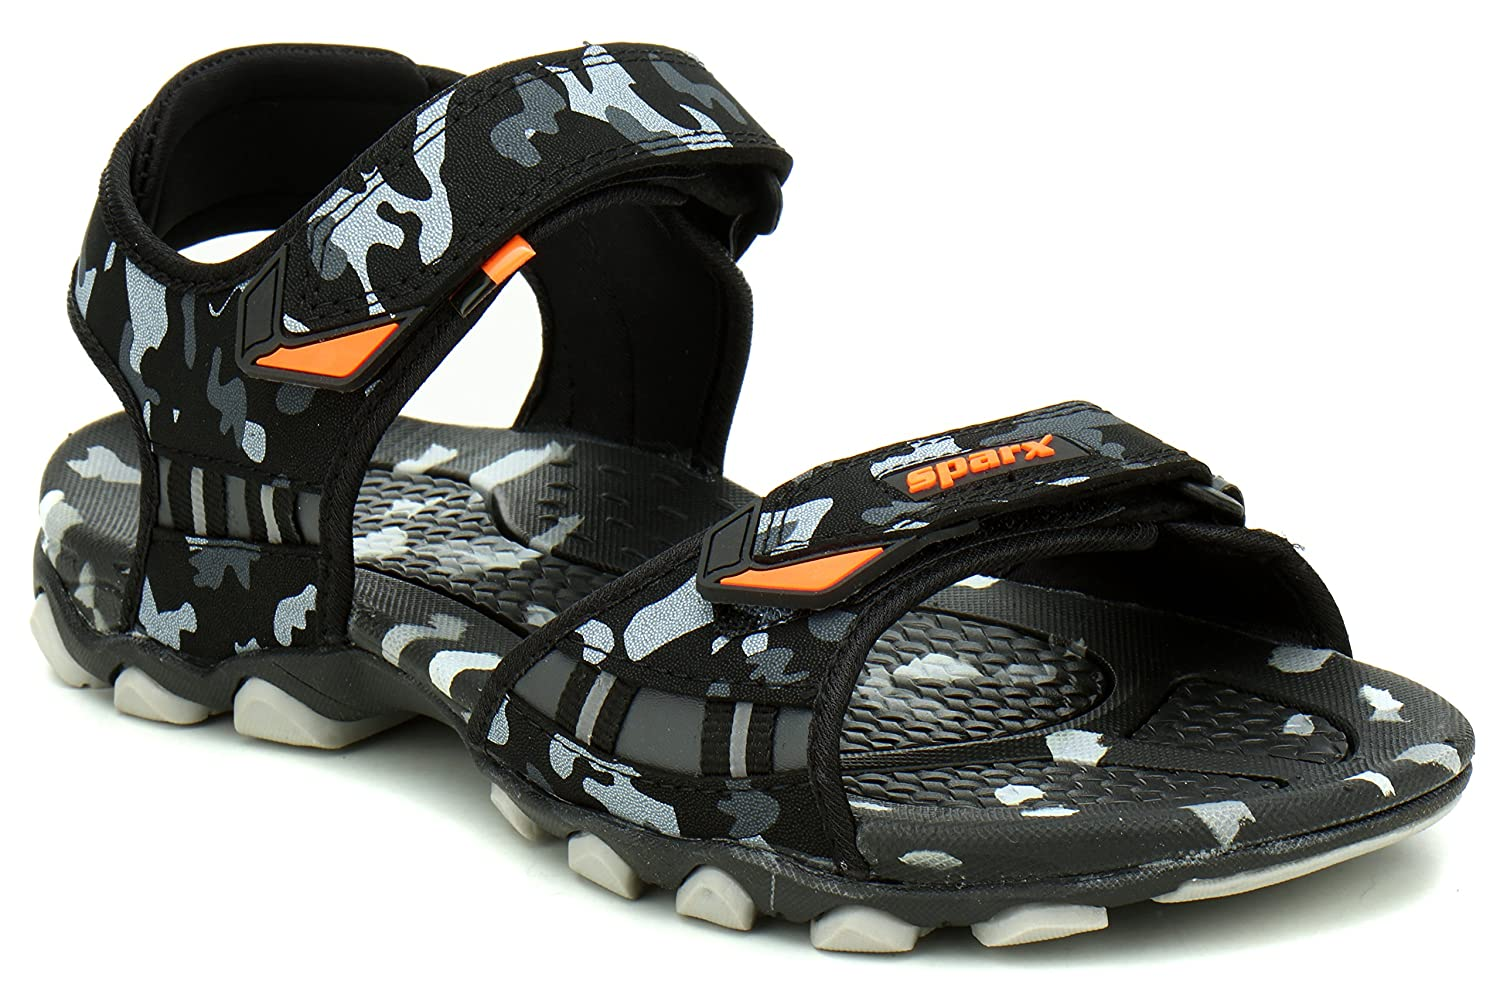 Sparx Men's Army Sandals for Men